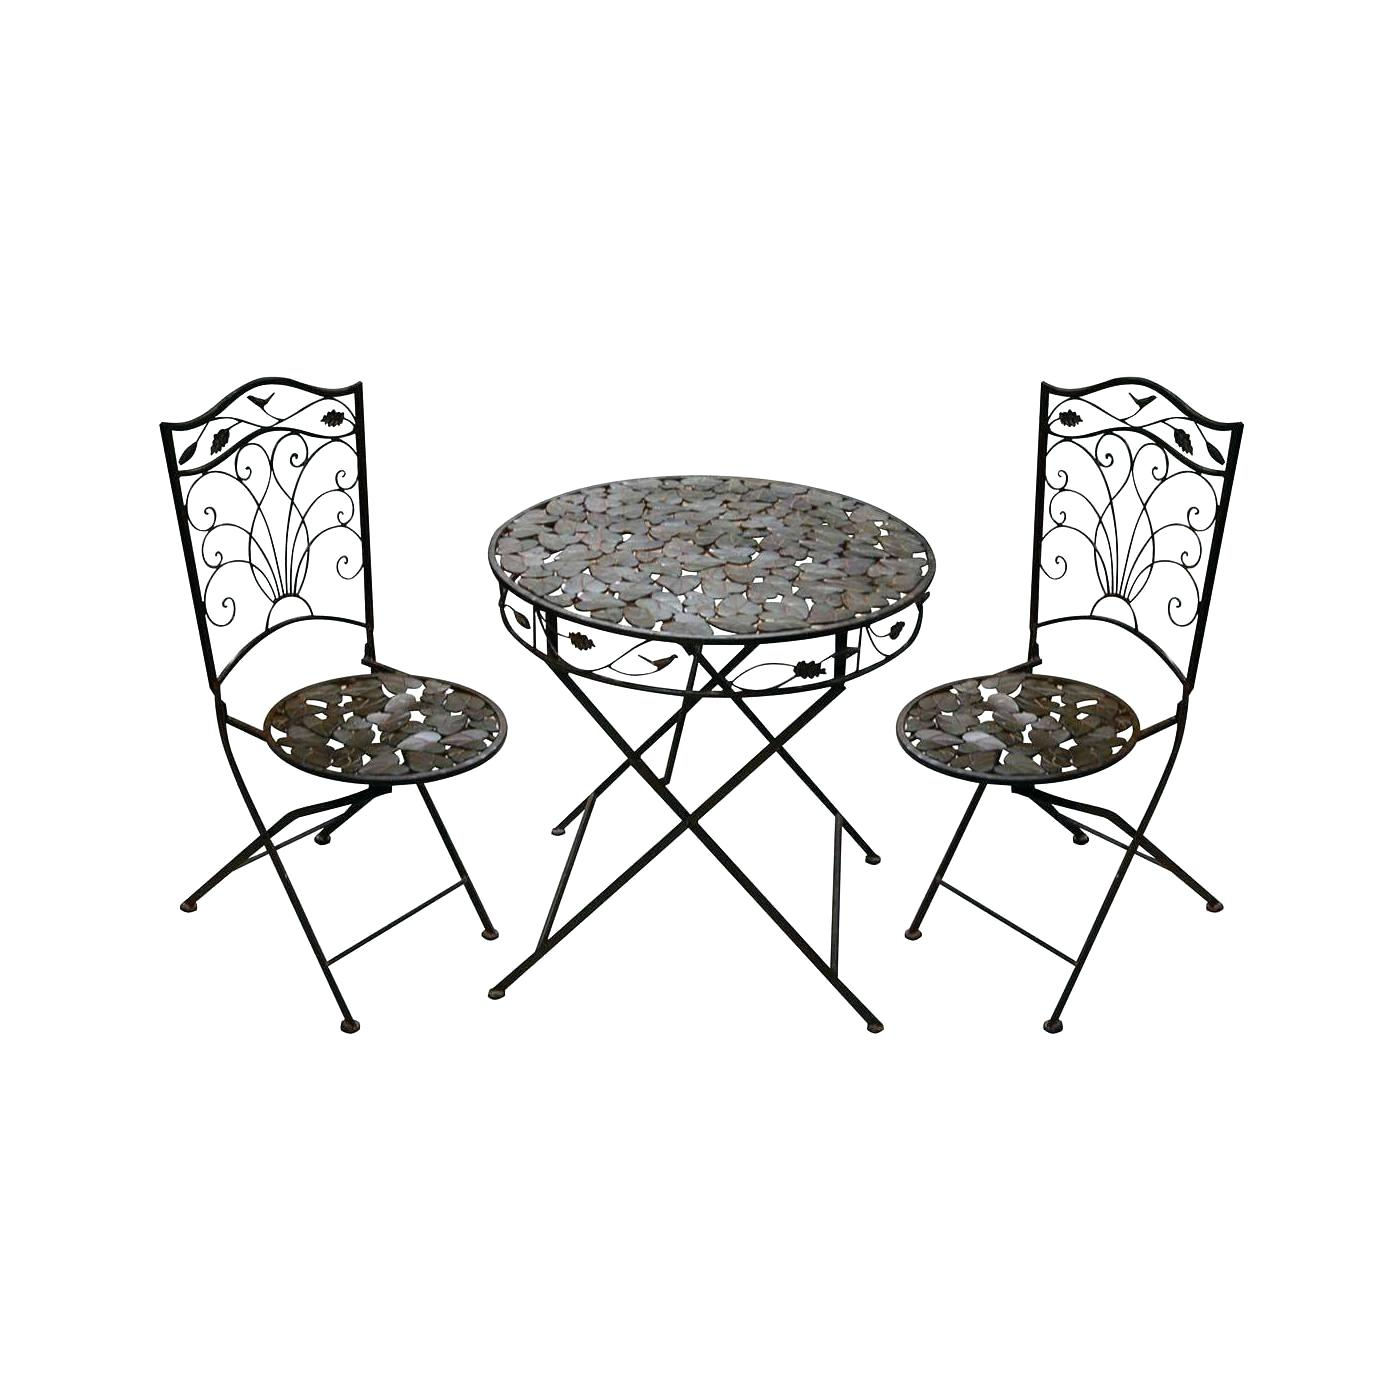 interior kitchen sets from with home tables design sturdy room table drop willpower small leaf dining appealing barrel chairs target and crate chair